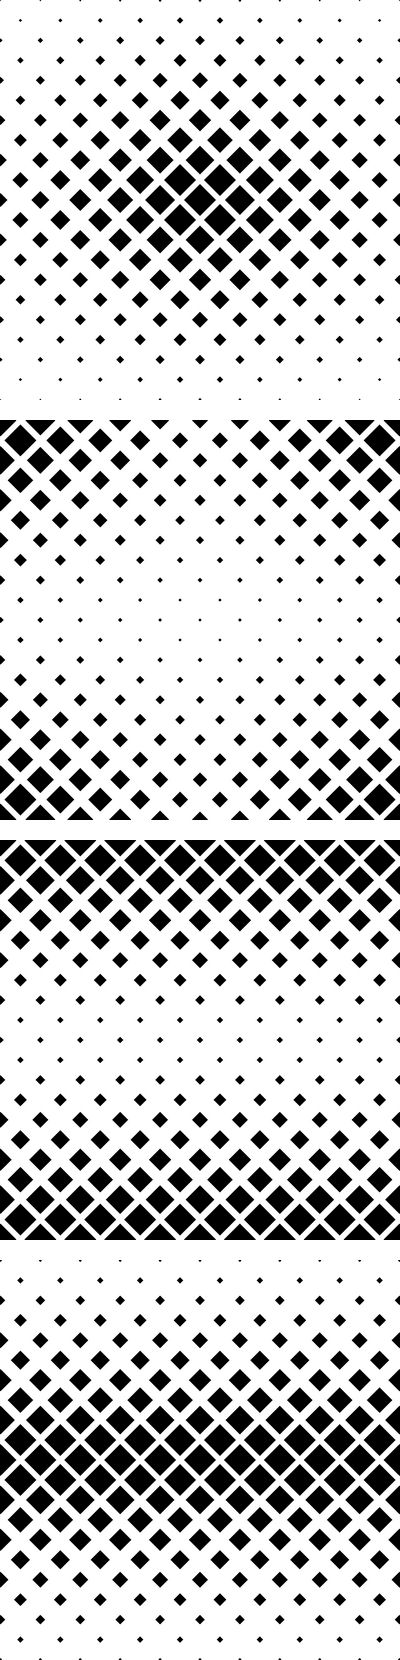 Simple seamless monochrome square patterns http://www.shutterstock.com/g/davidzydd/sets/6284589-seamless-monochrome-patterns?rid=2051861